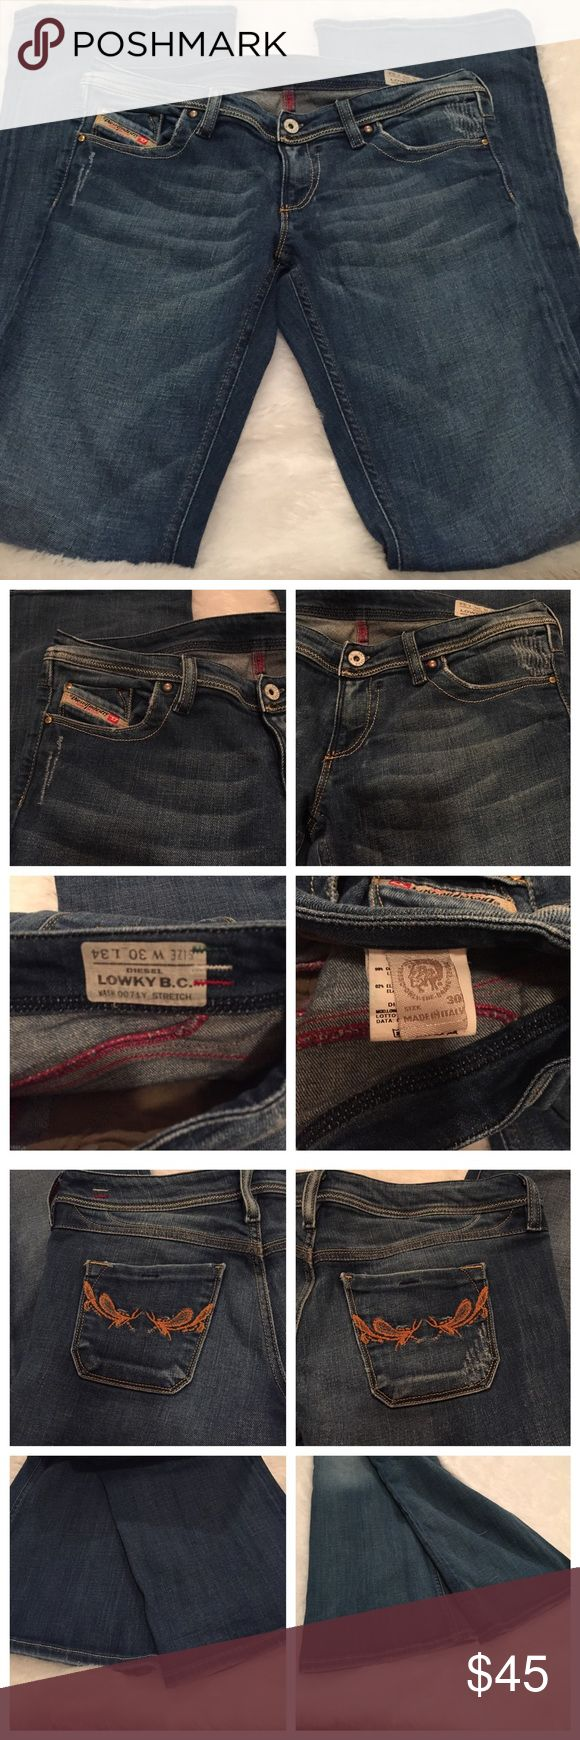 Diesel women's jeans Diesel lowky boot cut stretch jeans. Size W30xL34. Made in Italy. Diesel Jeans Boot Cut